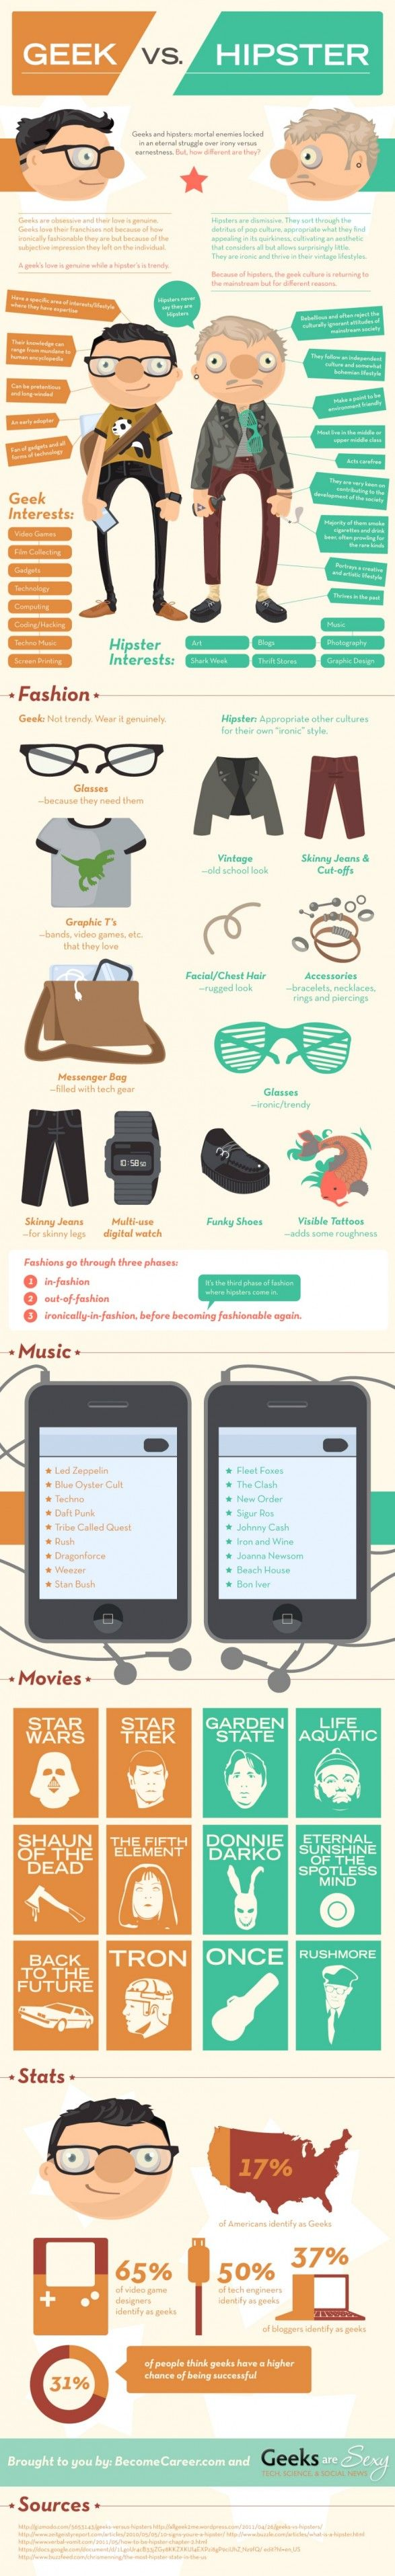 Geek vs. Hipster.: Laughing, Life, Nerdy, Random, Funny, Things, Geekeri, Design, Hipster Infographic